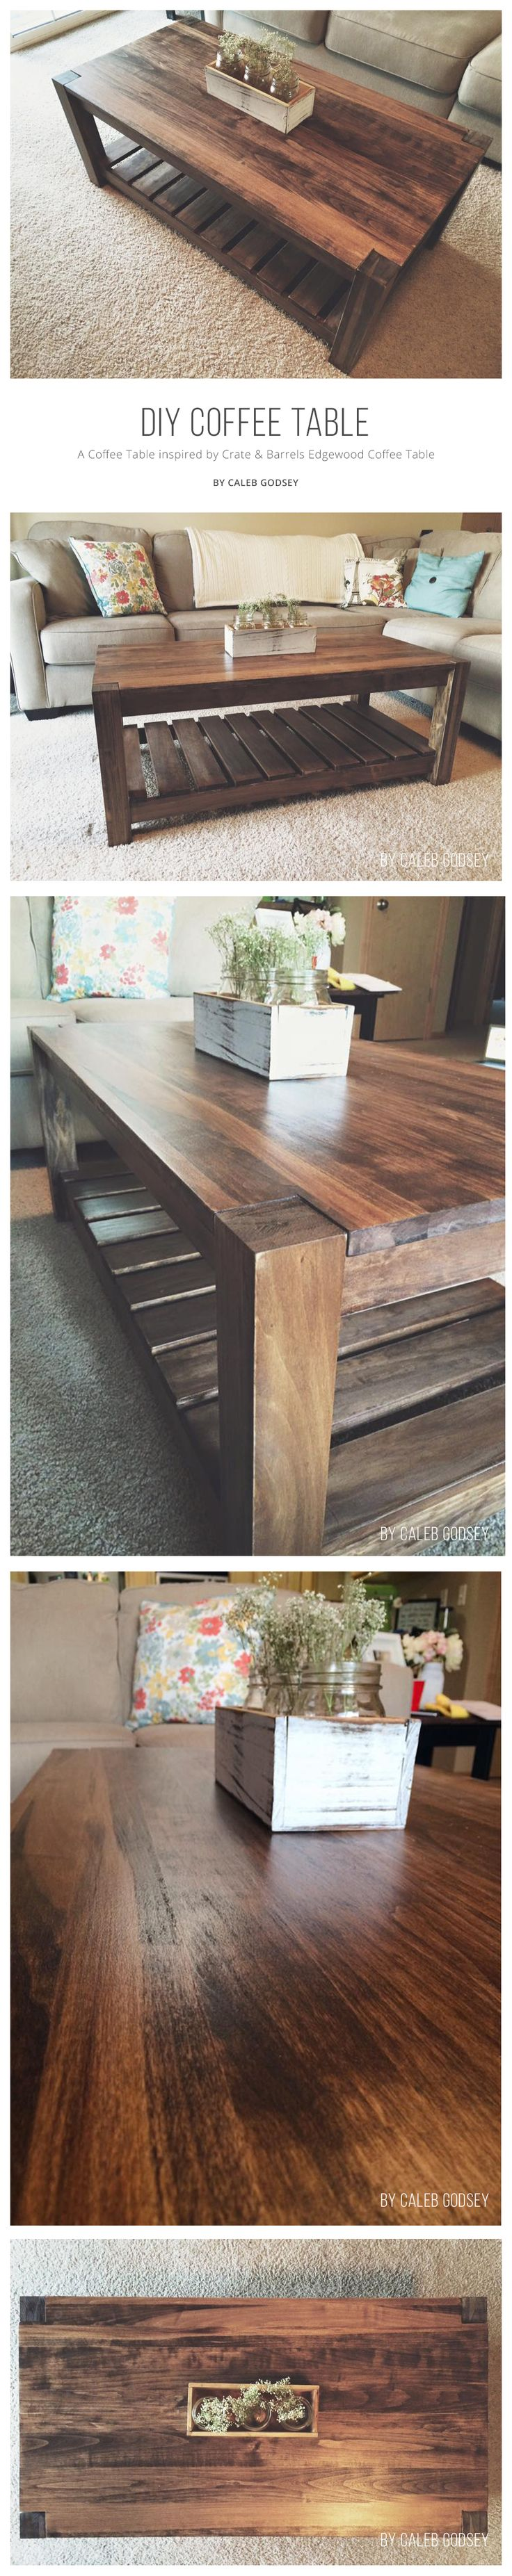 Best 25 Pine table ideas on Pinterest